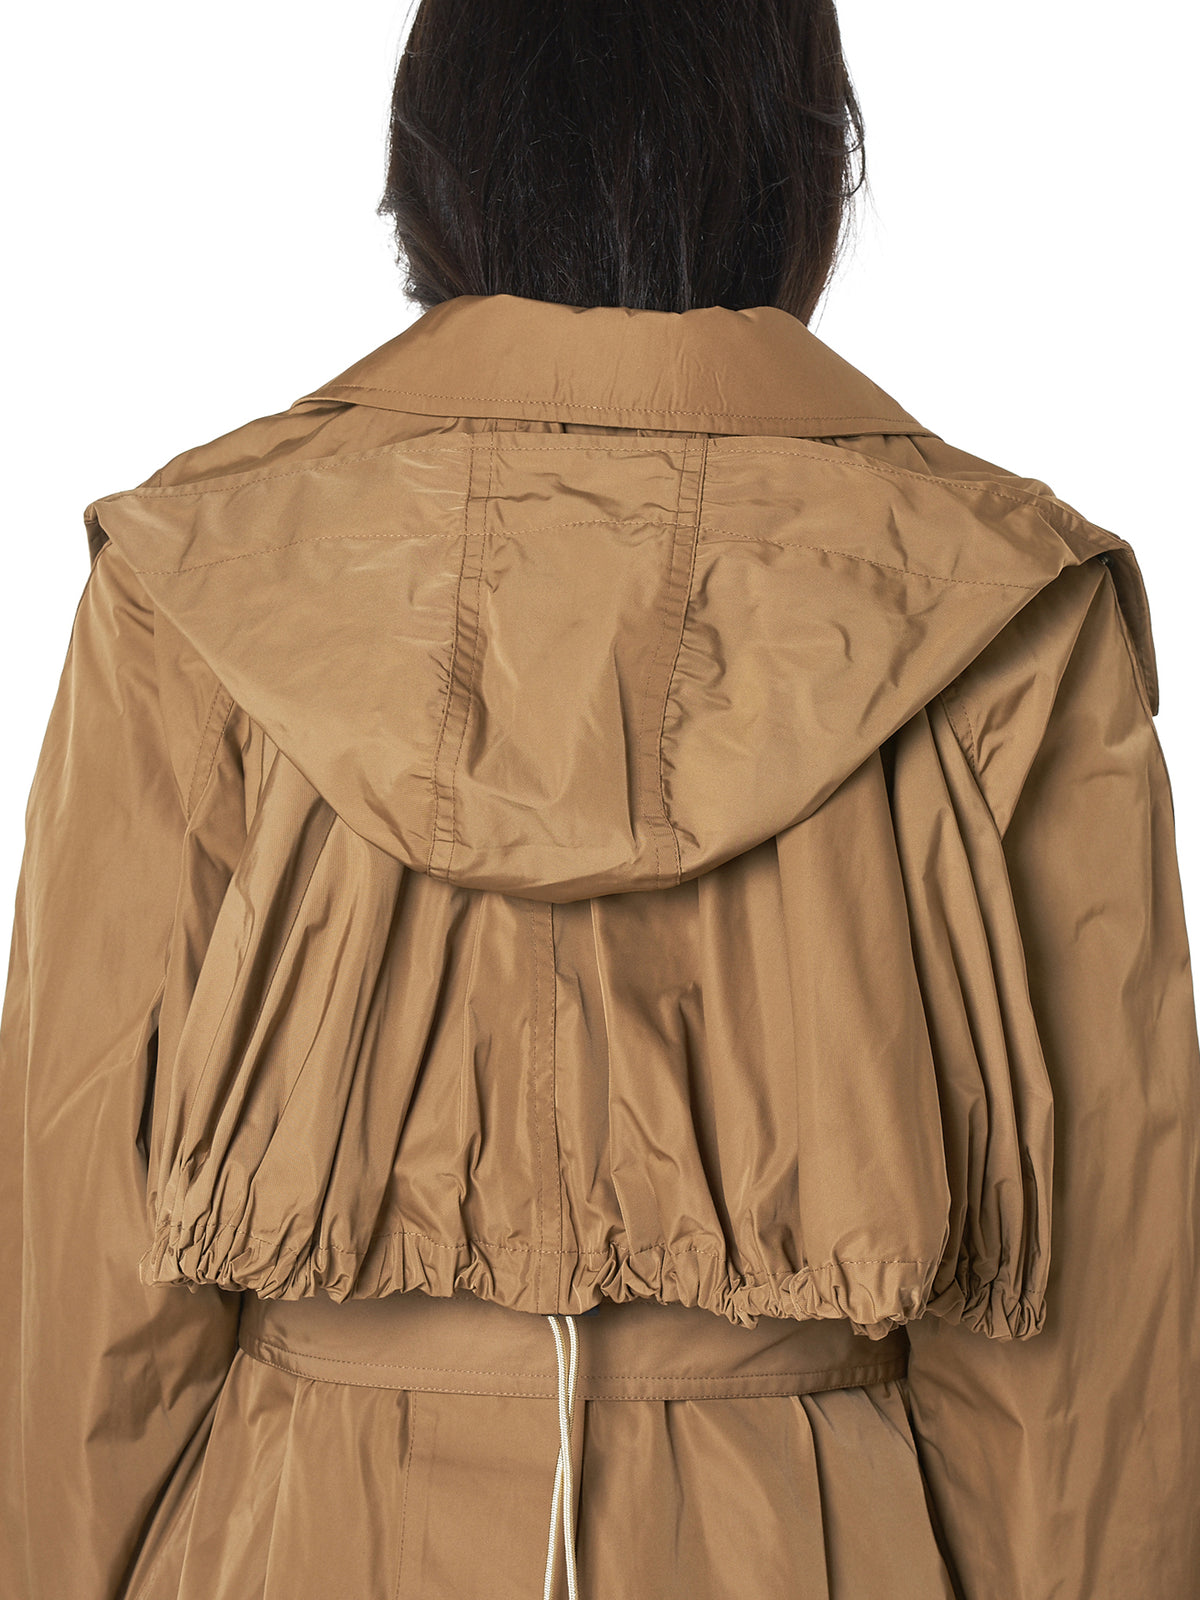 Packable Hooded Raincoat (TA82-FA036-E-BEIGE)